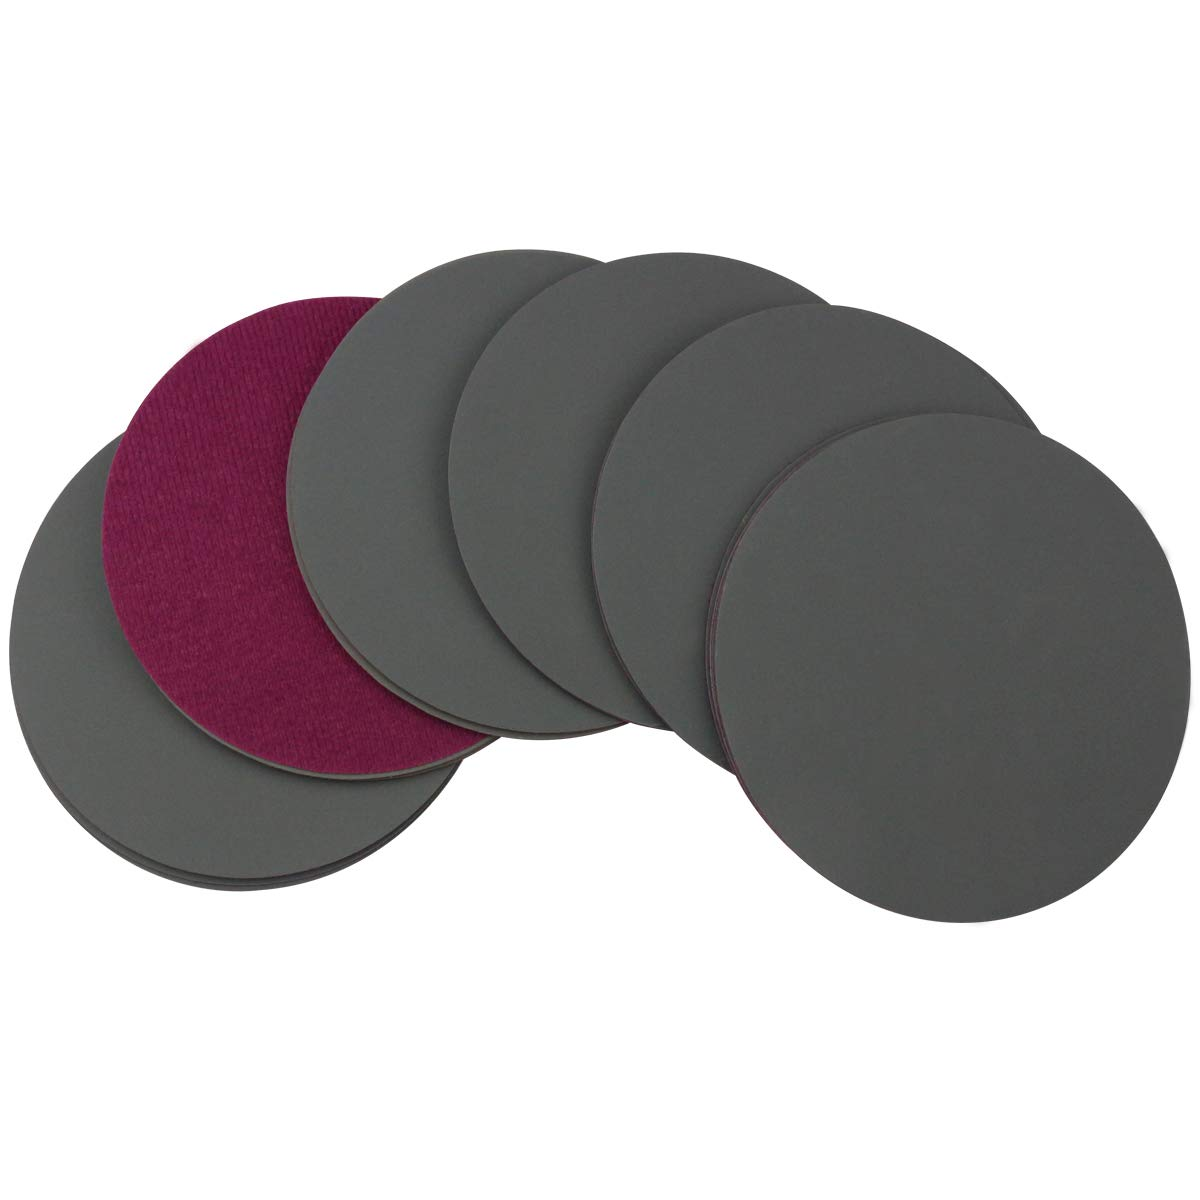 Sanding Discs 6 Inch,600 Grit Wet Dry Sandpaper,Silicon Carbide Hook and Loop Random Orbital Sander Round Sand Paper by MAXMAN,30-Pack